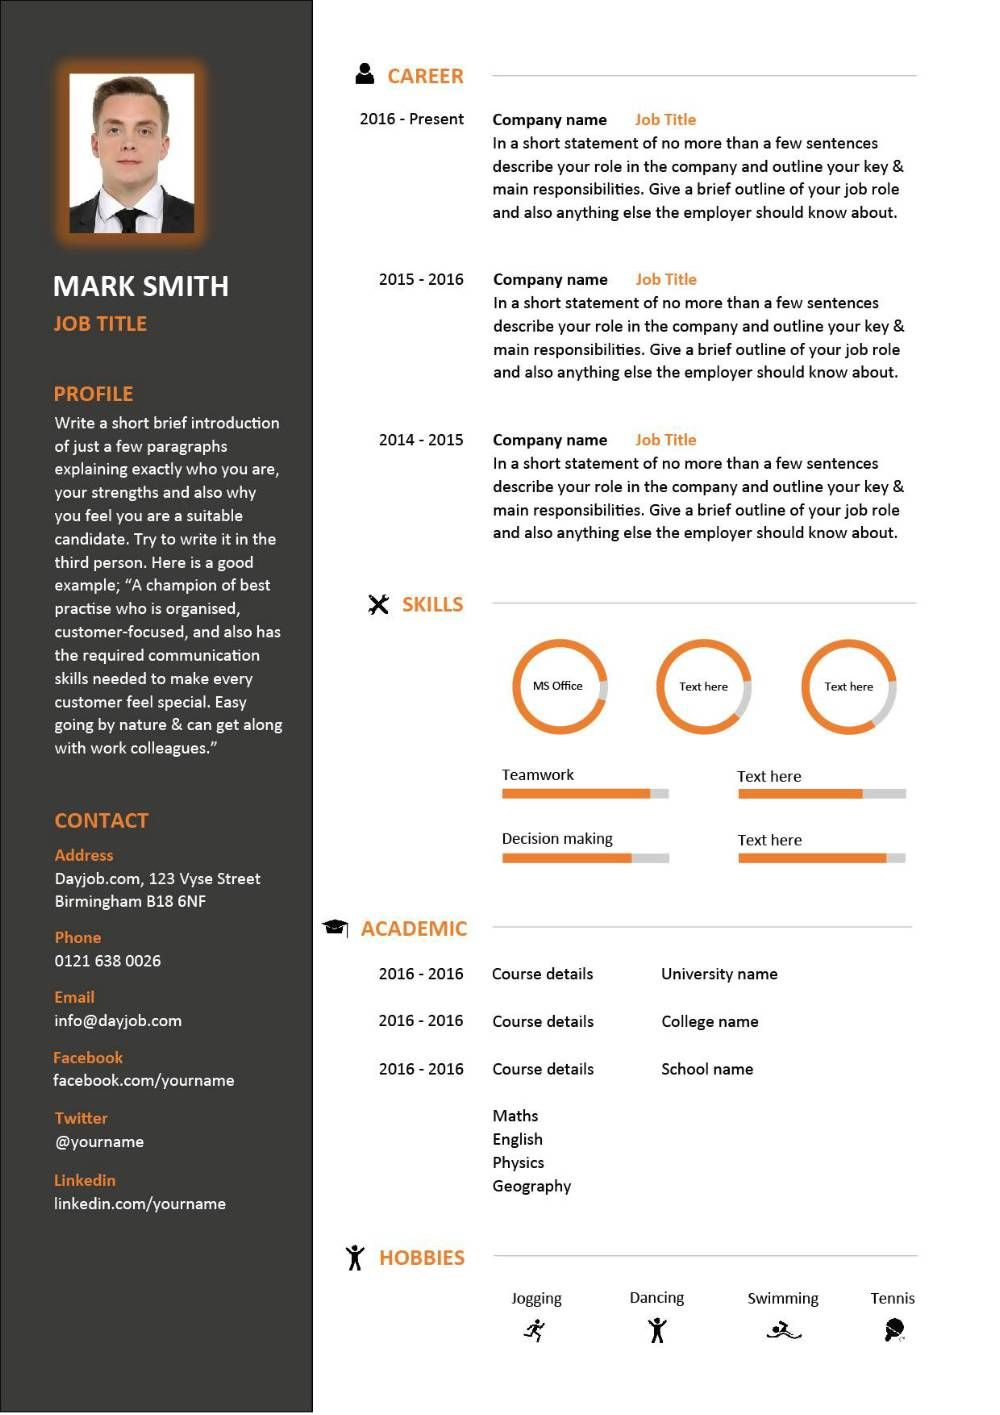 resume Resume Layout latest cv template designs resume layout font creative eye catching